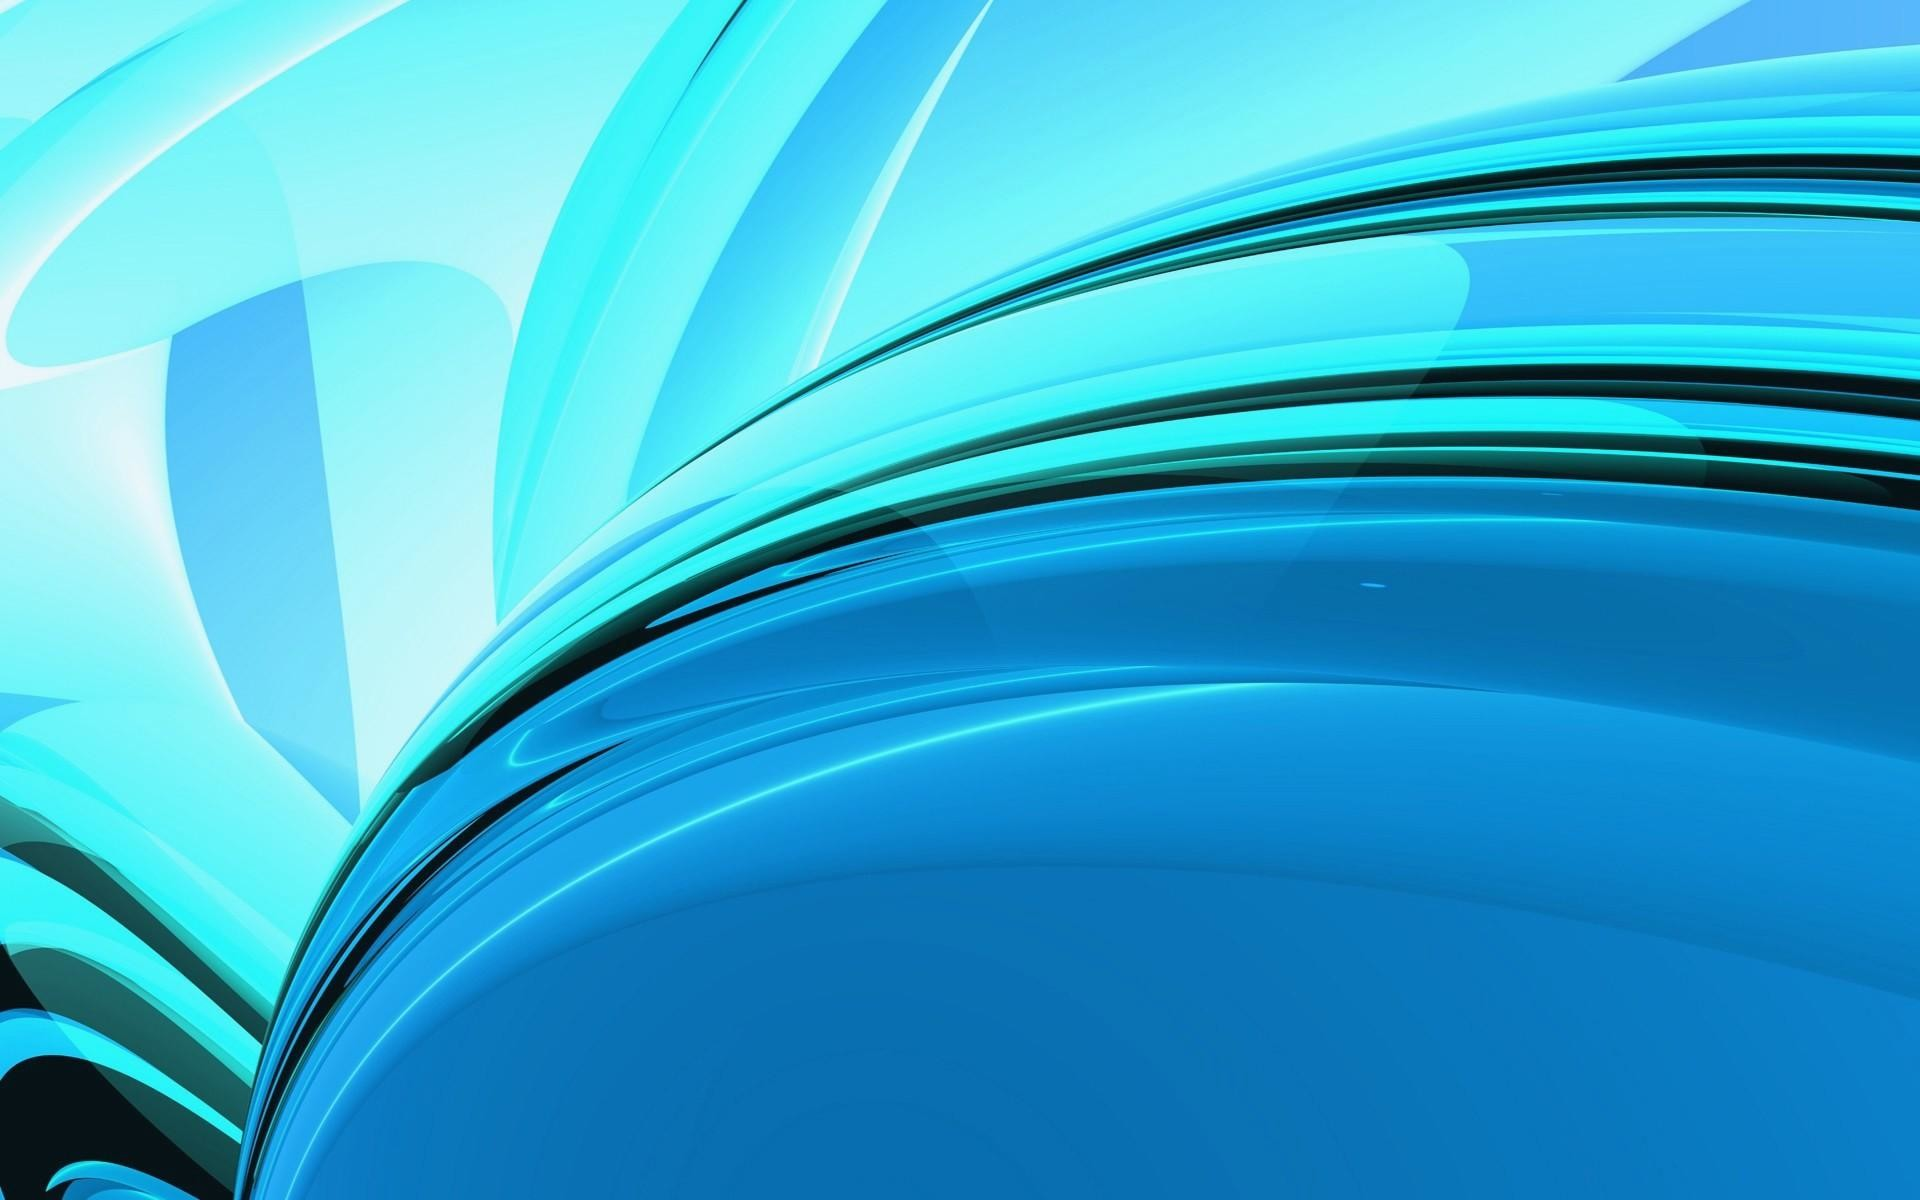 Blue Abstract wallpapers for desktop